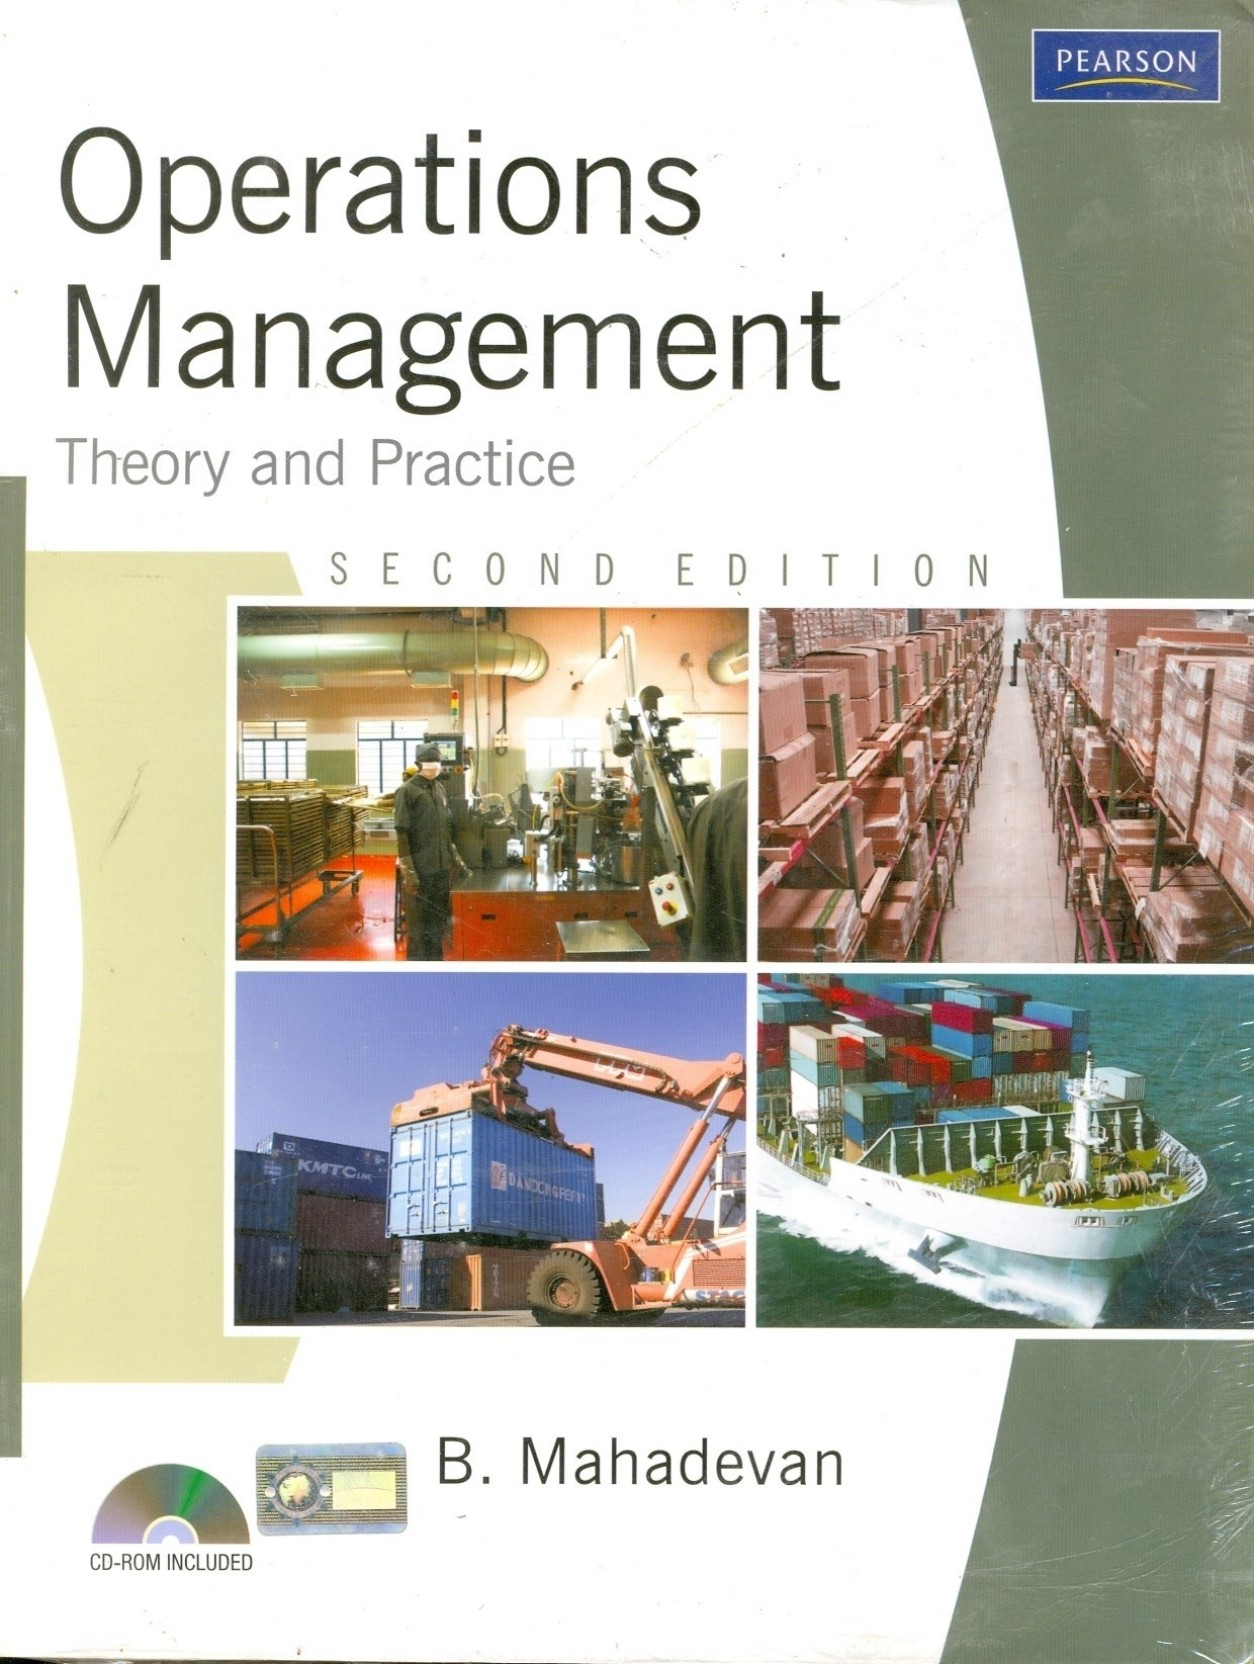 operations management cds